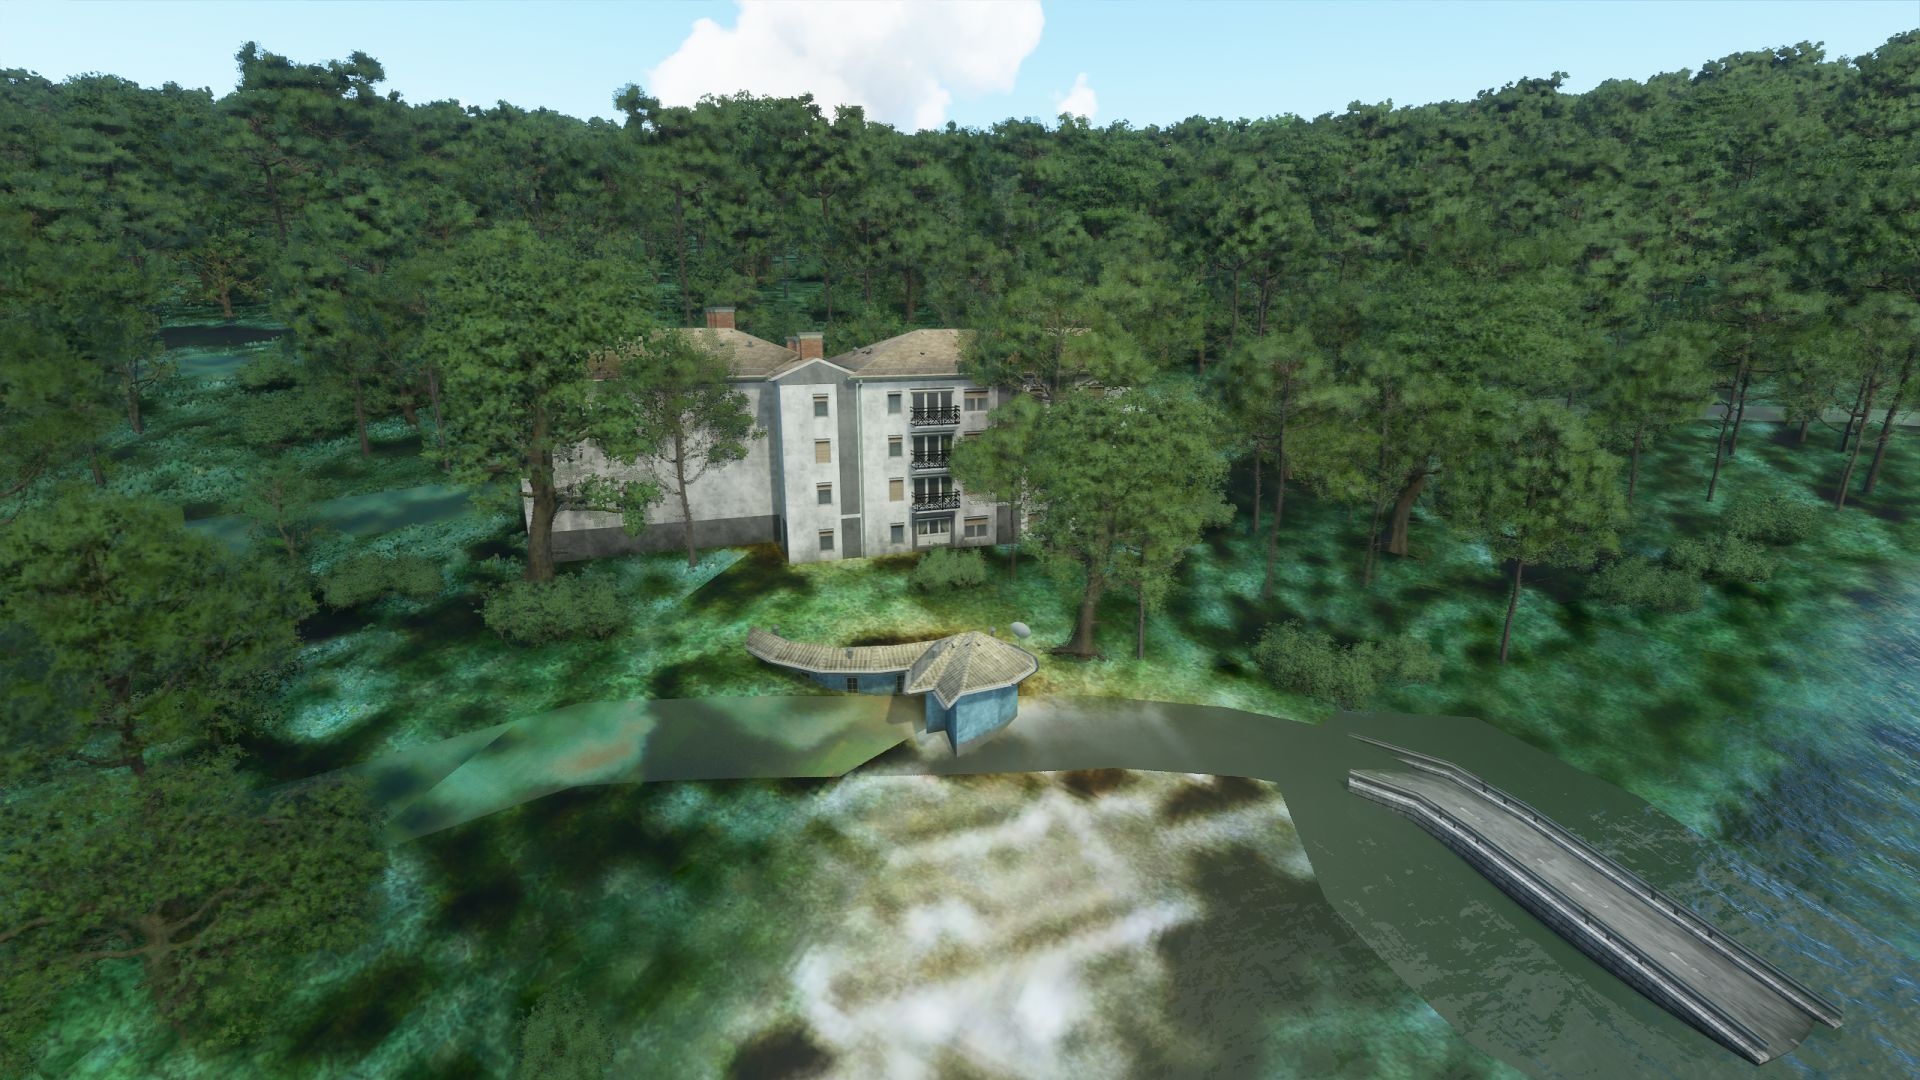 A screenshot from Microsoft Flight Simulator showing Frank Lloyd Wright's Falling Water. It is made out of generic buildings and not the original building